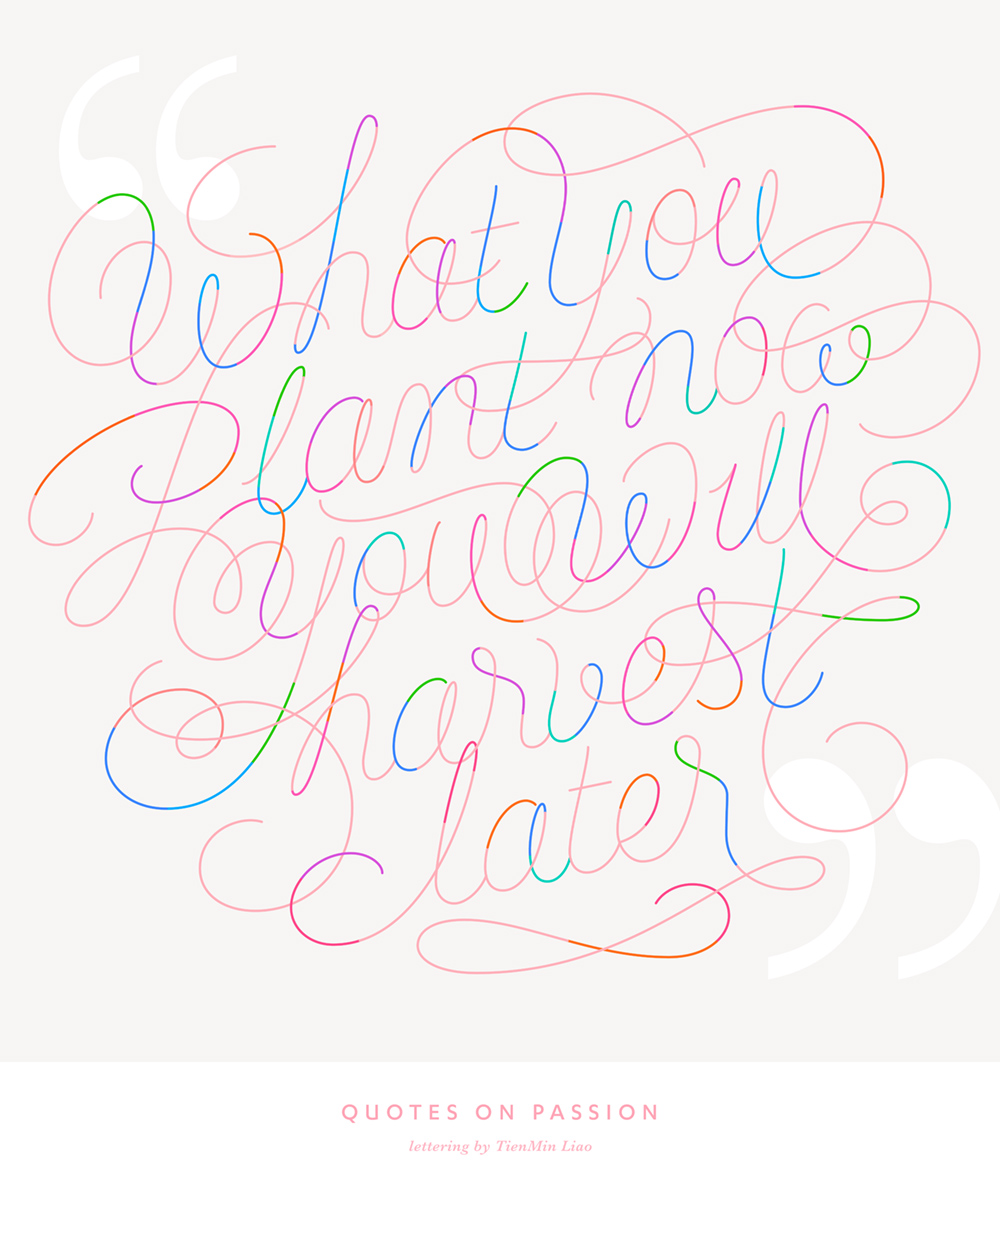 typographic quotes on design passion by tienmin liao alfalfa